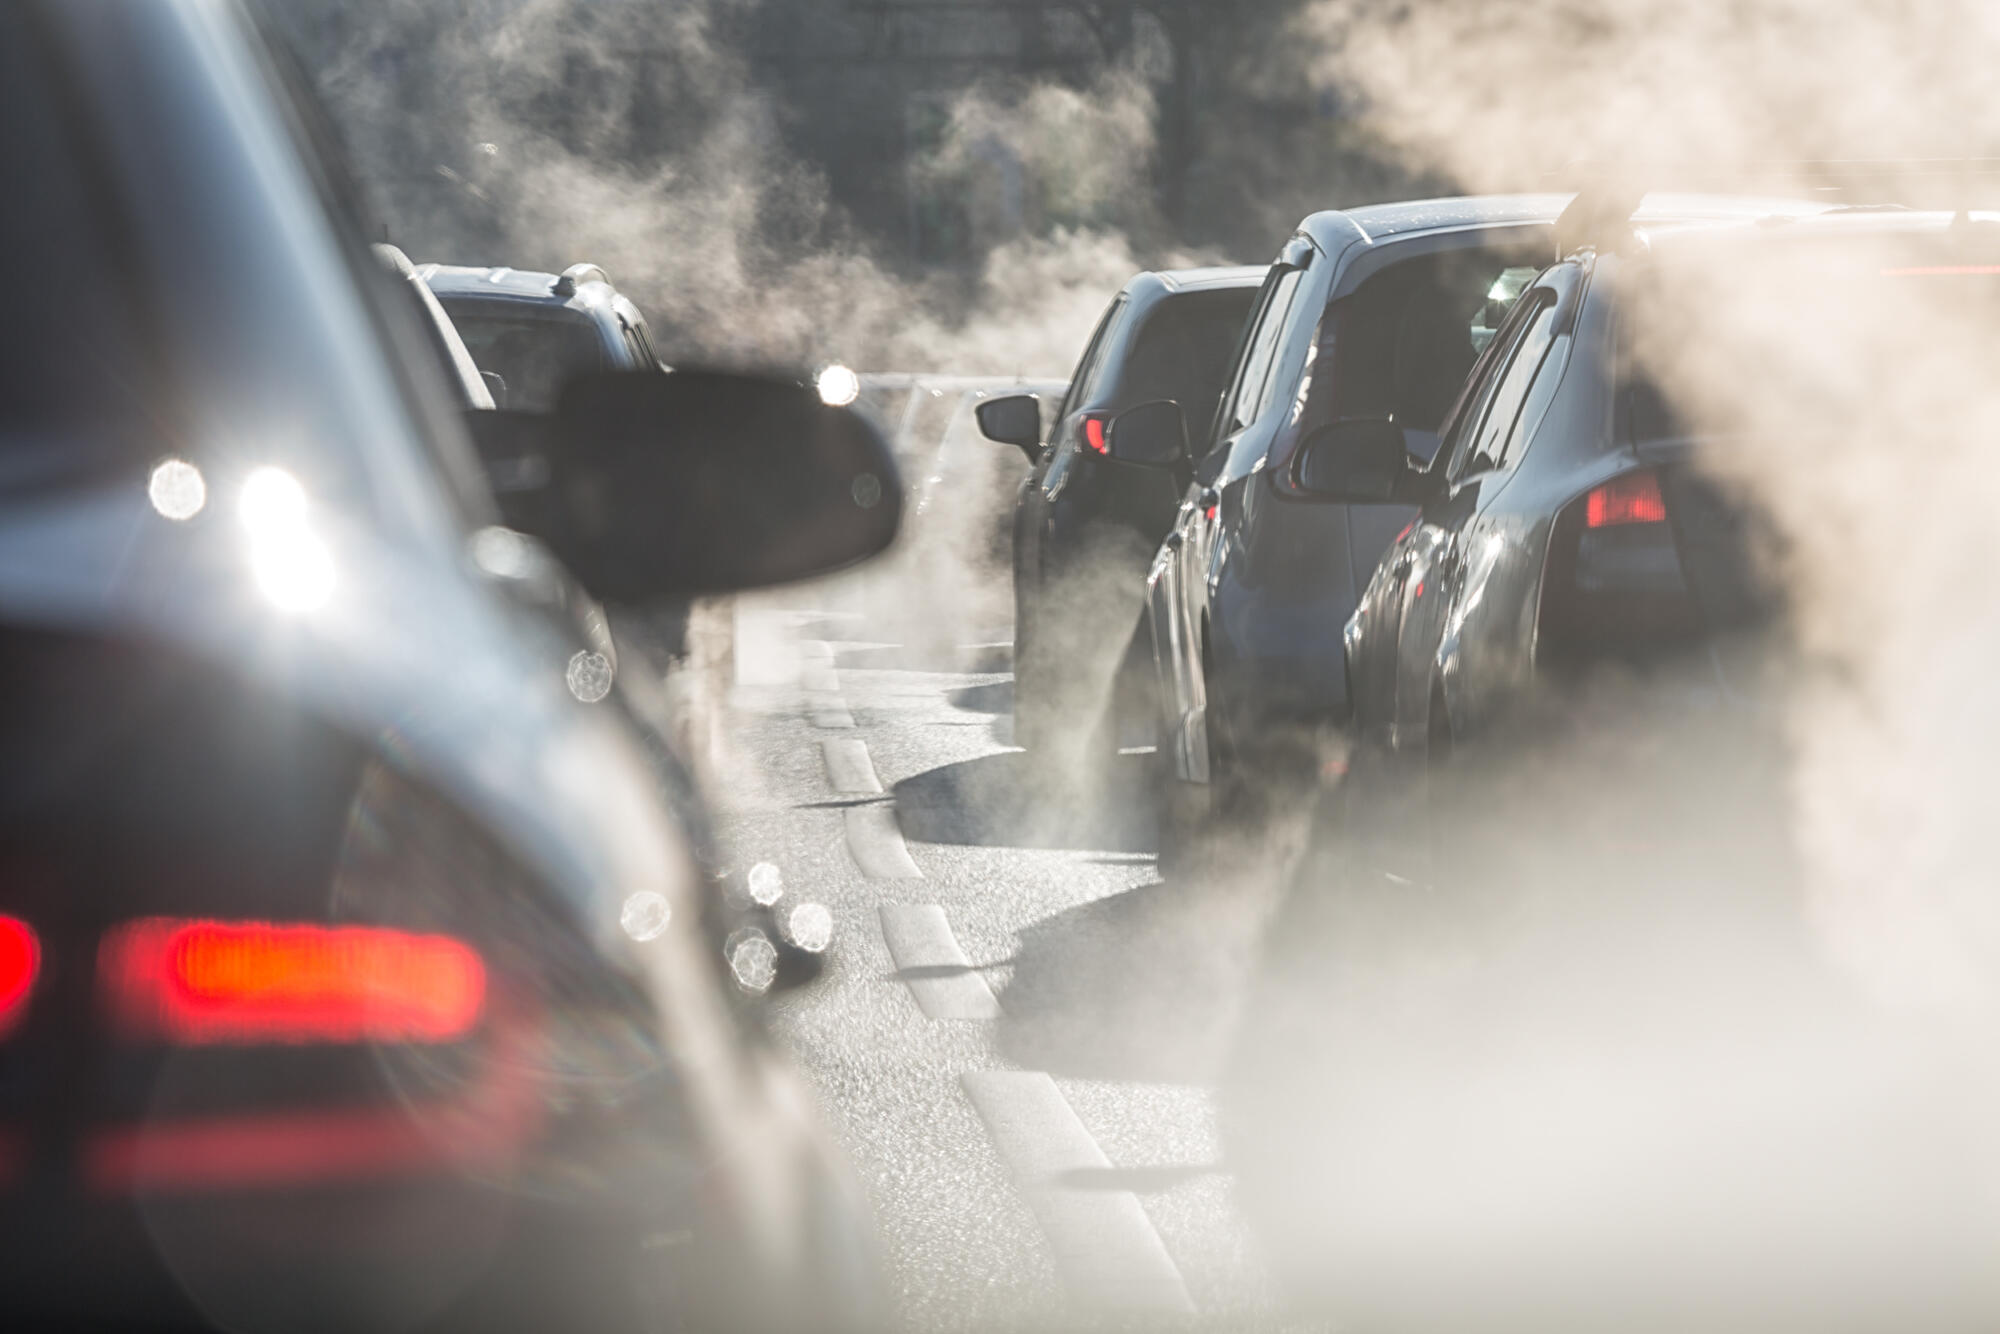 Brussels will phase-out diesel cars by 2030 and fuel vehicles by 2035